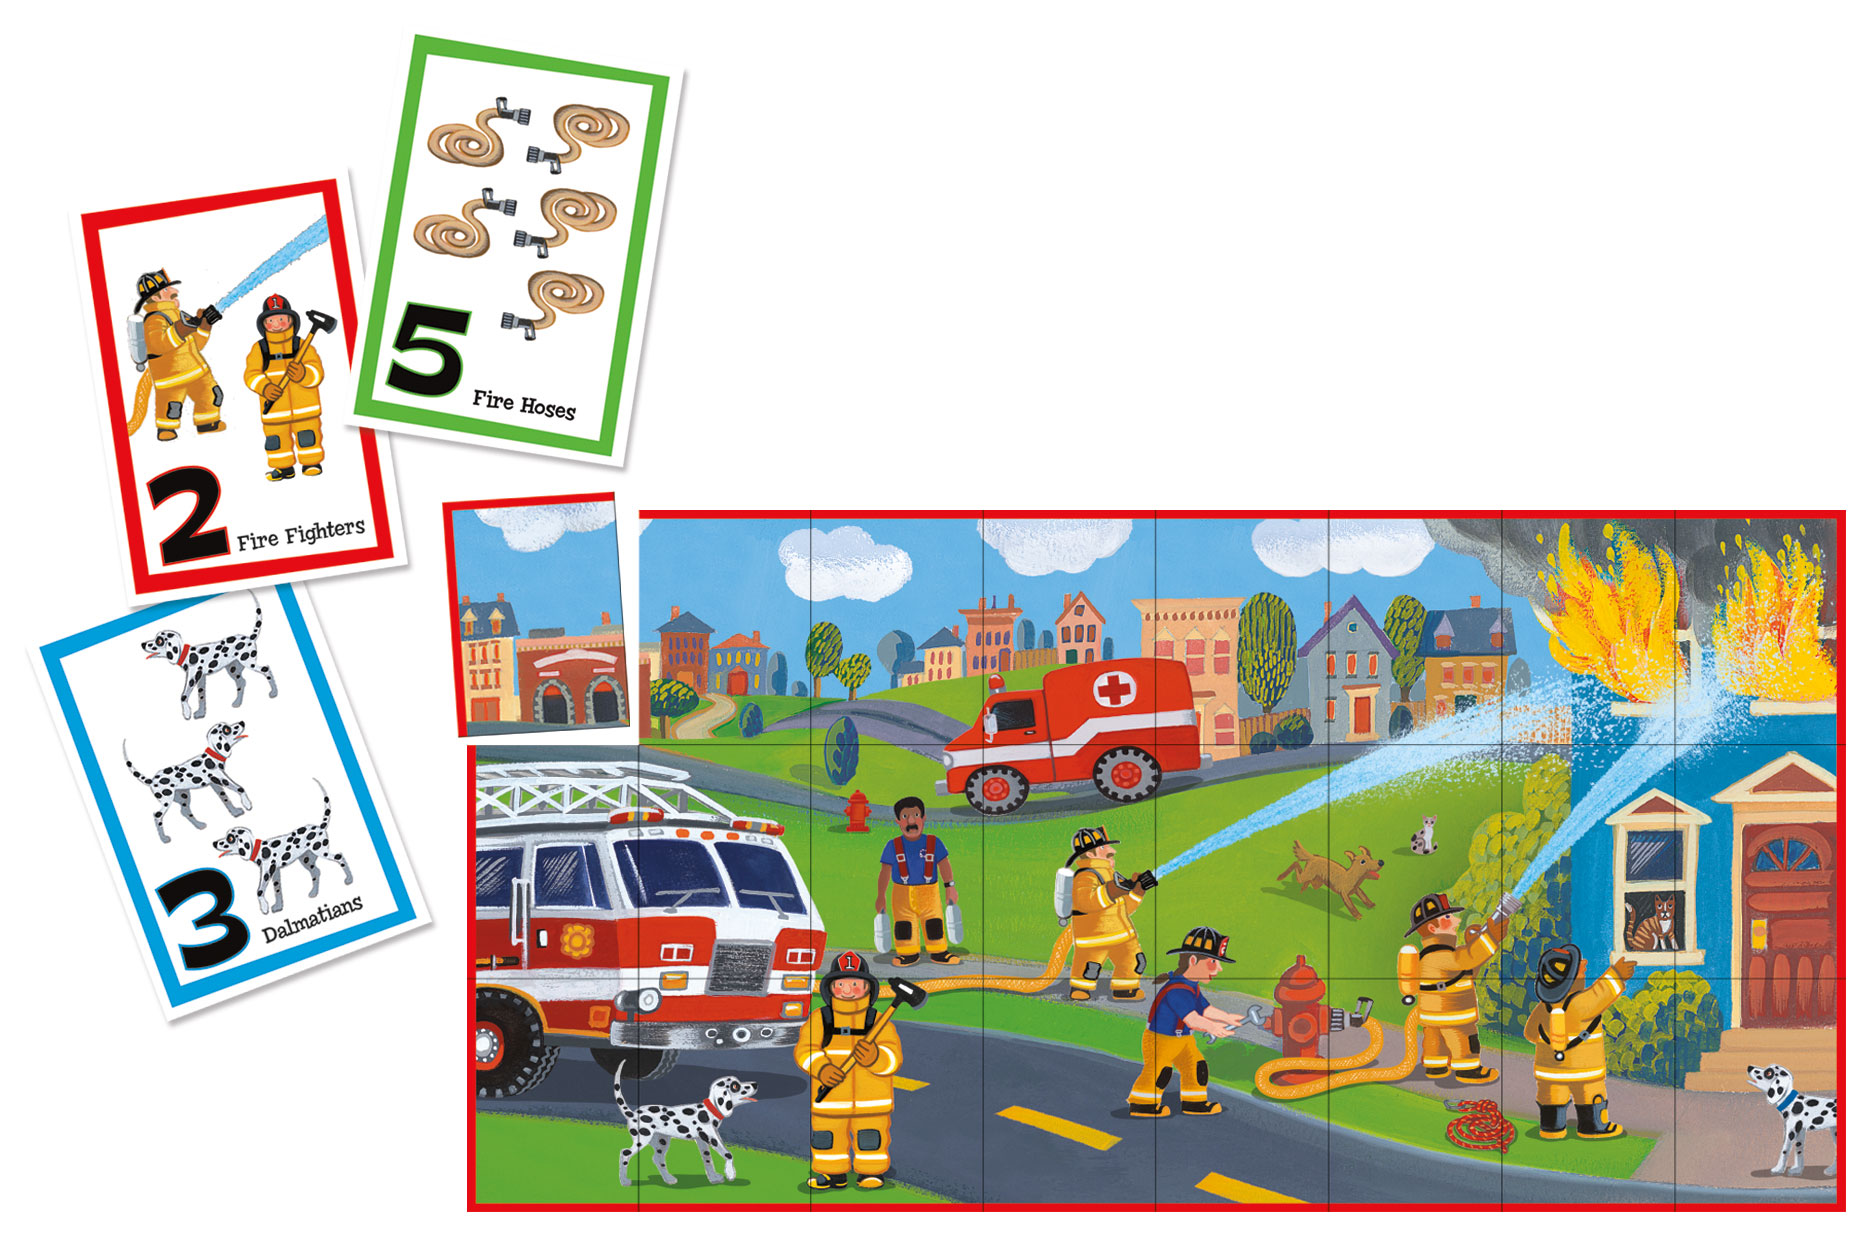 Match Up Game & Puzzle, Learn to count -- Fire Rescue by Peaceable Kingdom